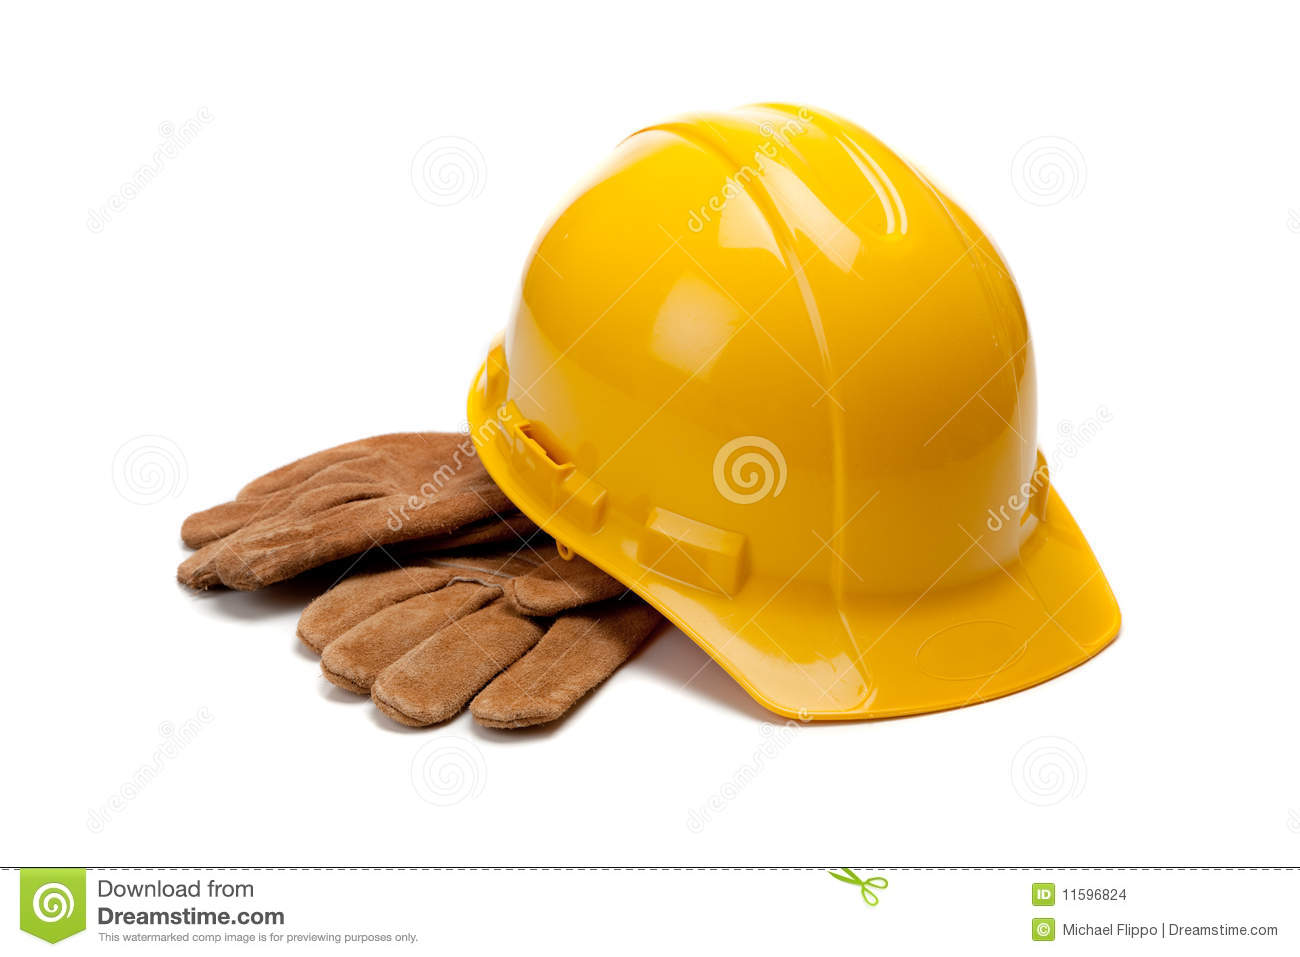 A yellow hard hat and leather work gloves on white